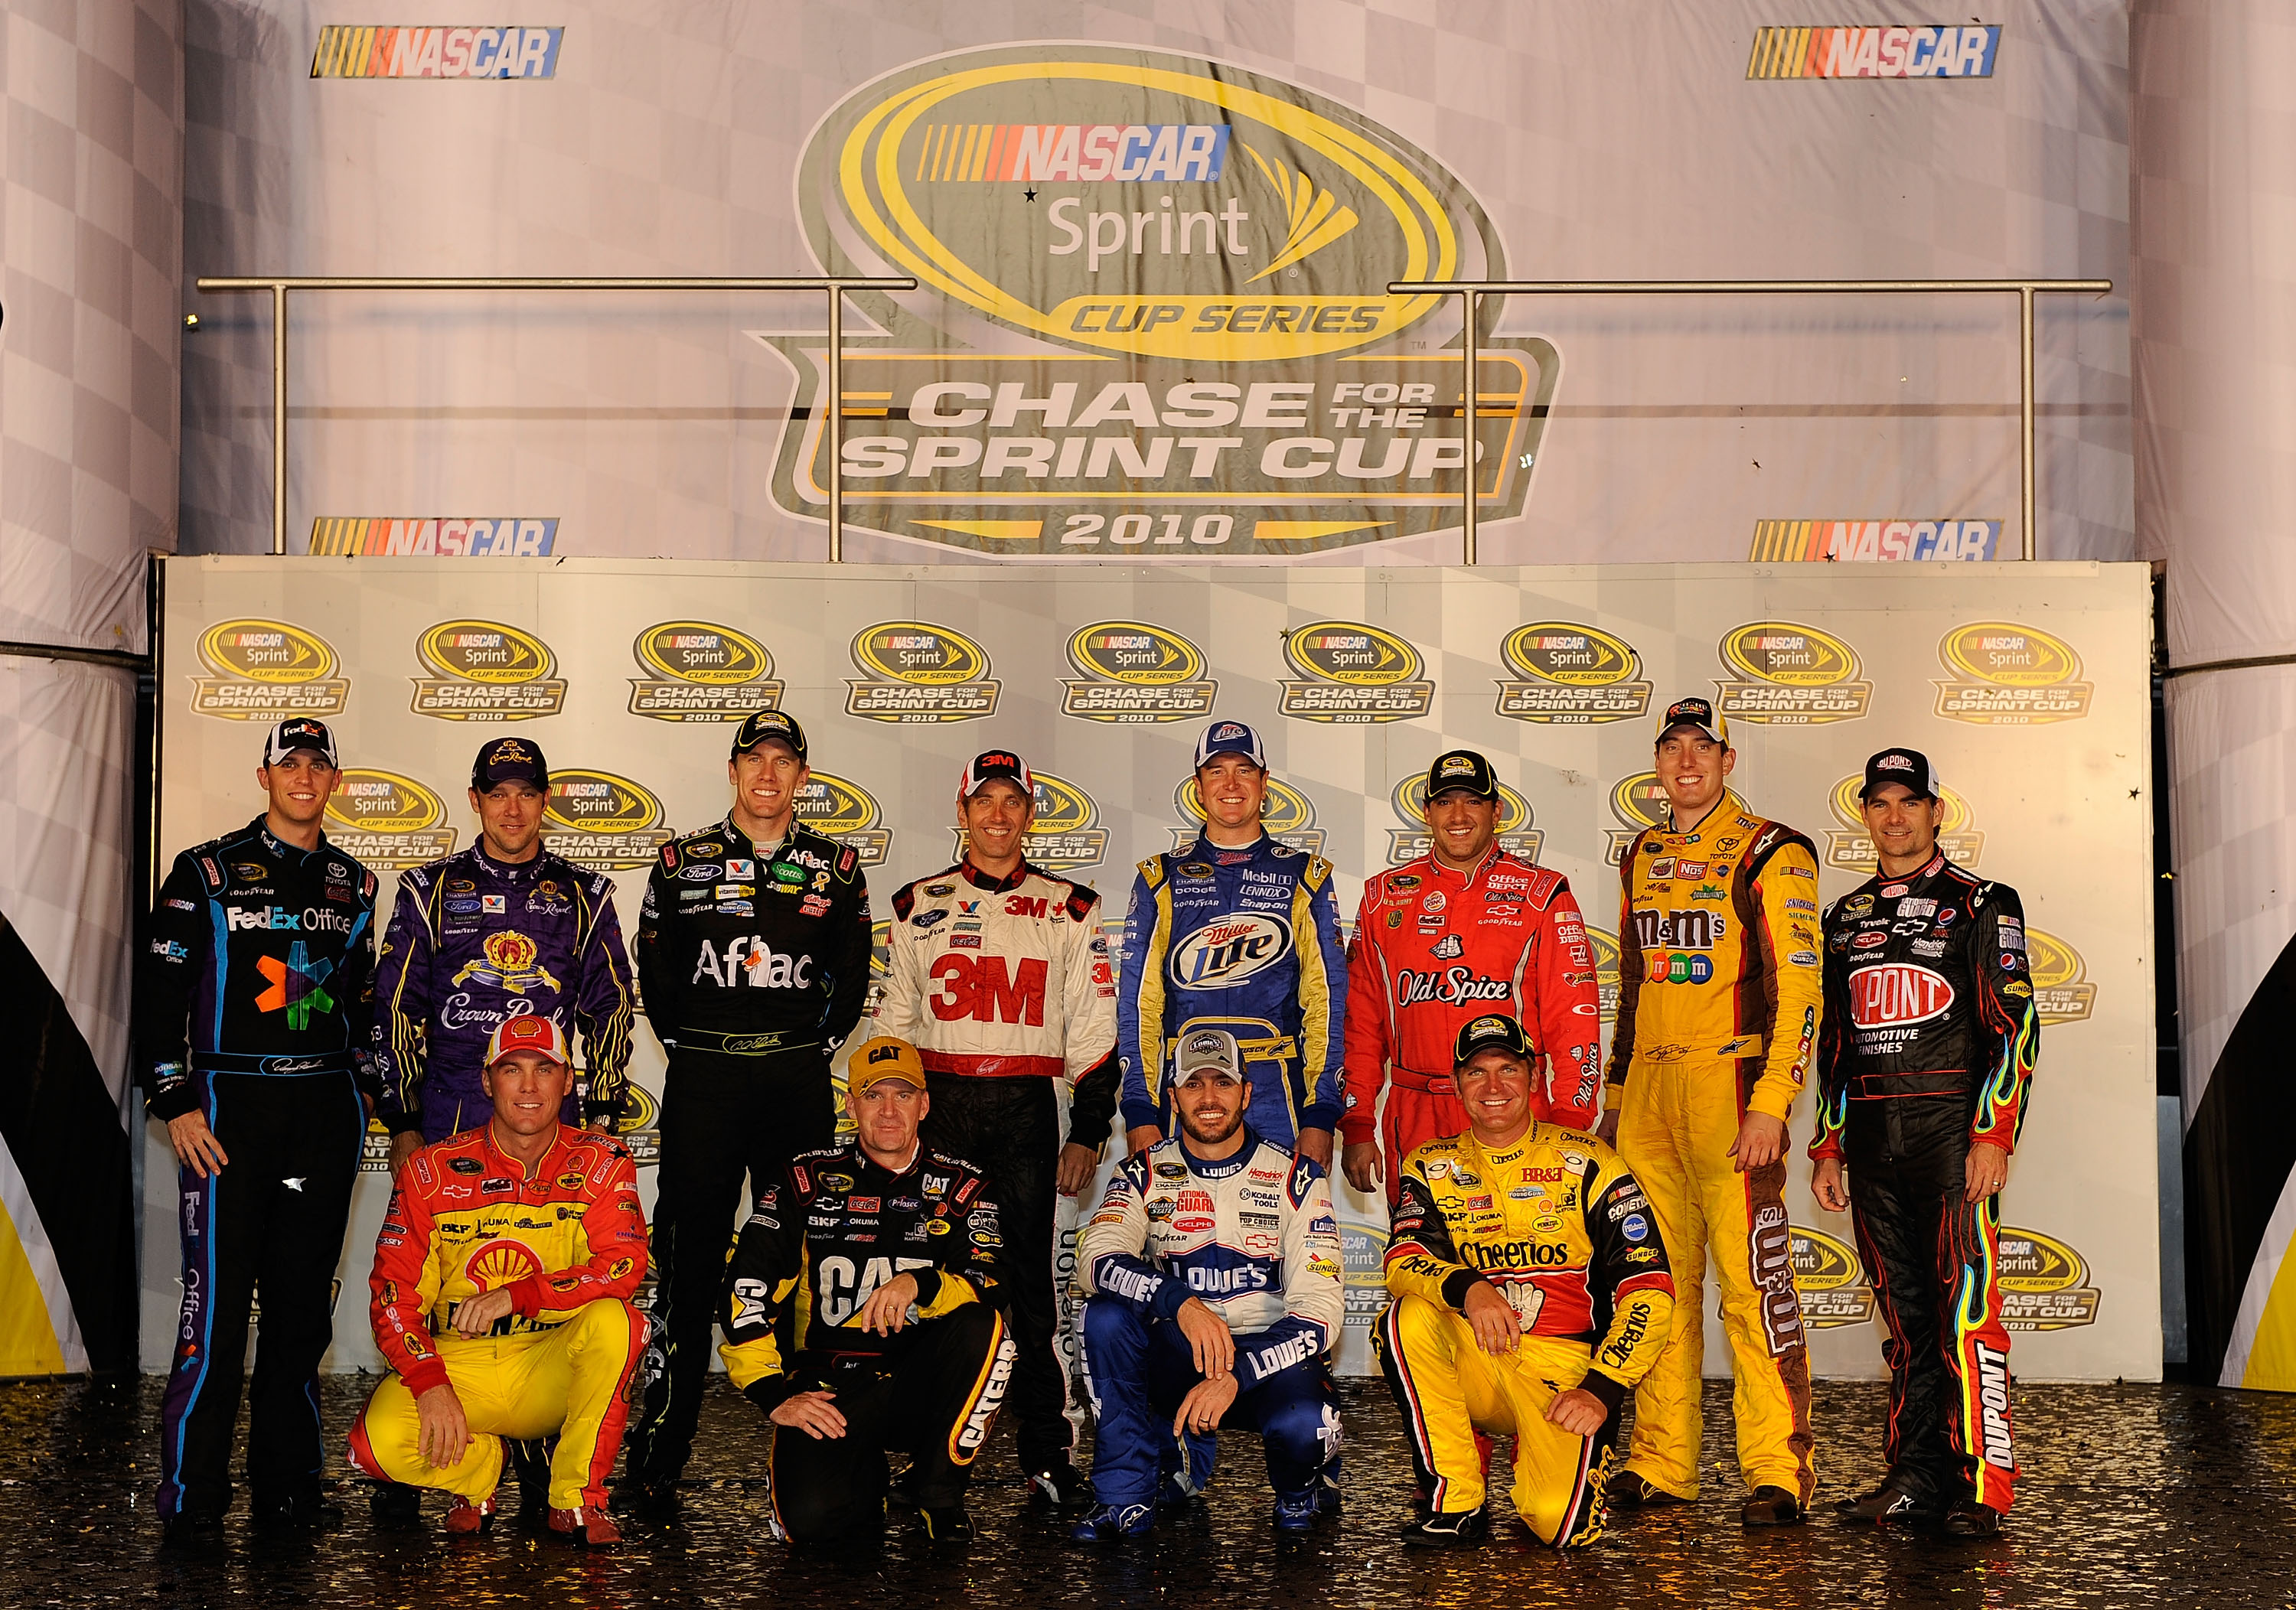 At least two of the NASCAR Chase drivers will issue a challenge to Jimmie Johnson & Chad Knaus.